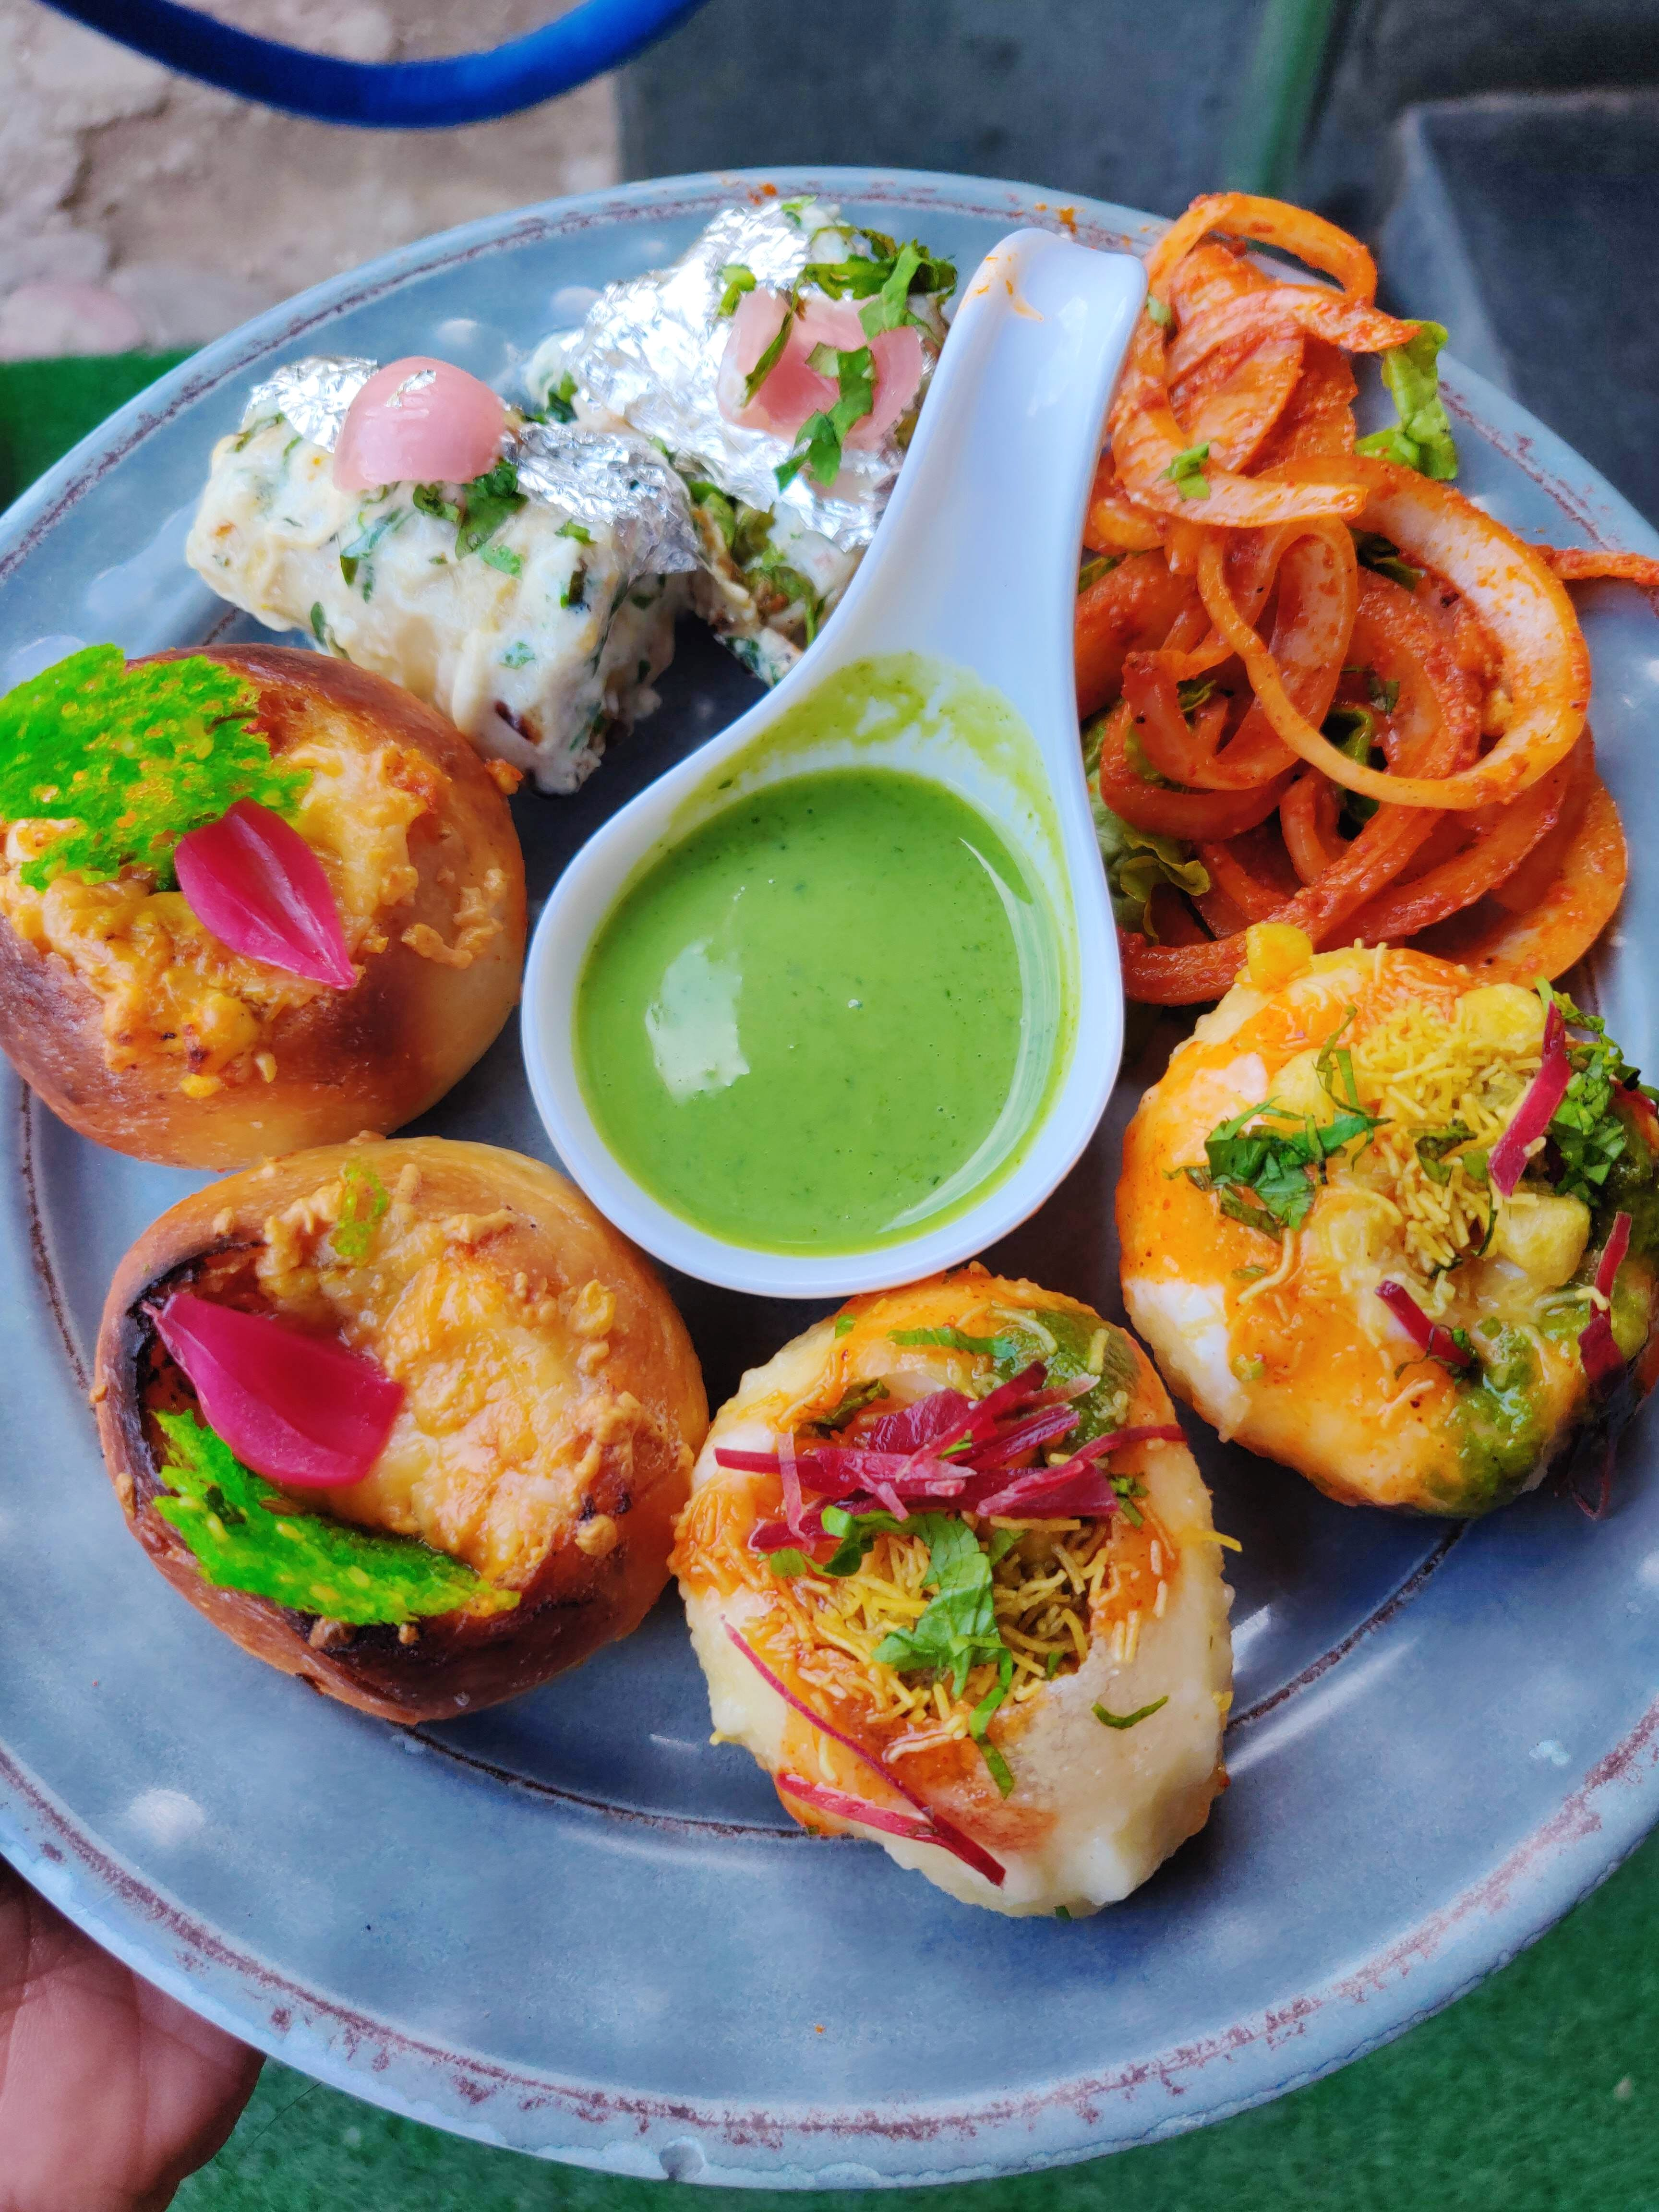 Dish,Food,Cuisine,Ingredient,Fried food,Produce,Staple food,Finger food,Fritter,Chaat